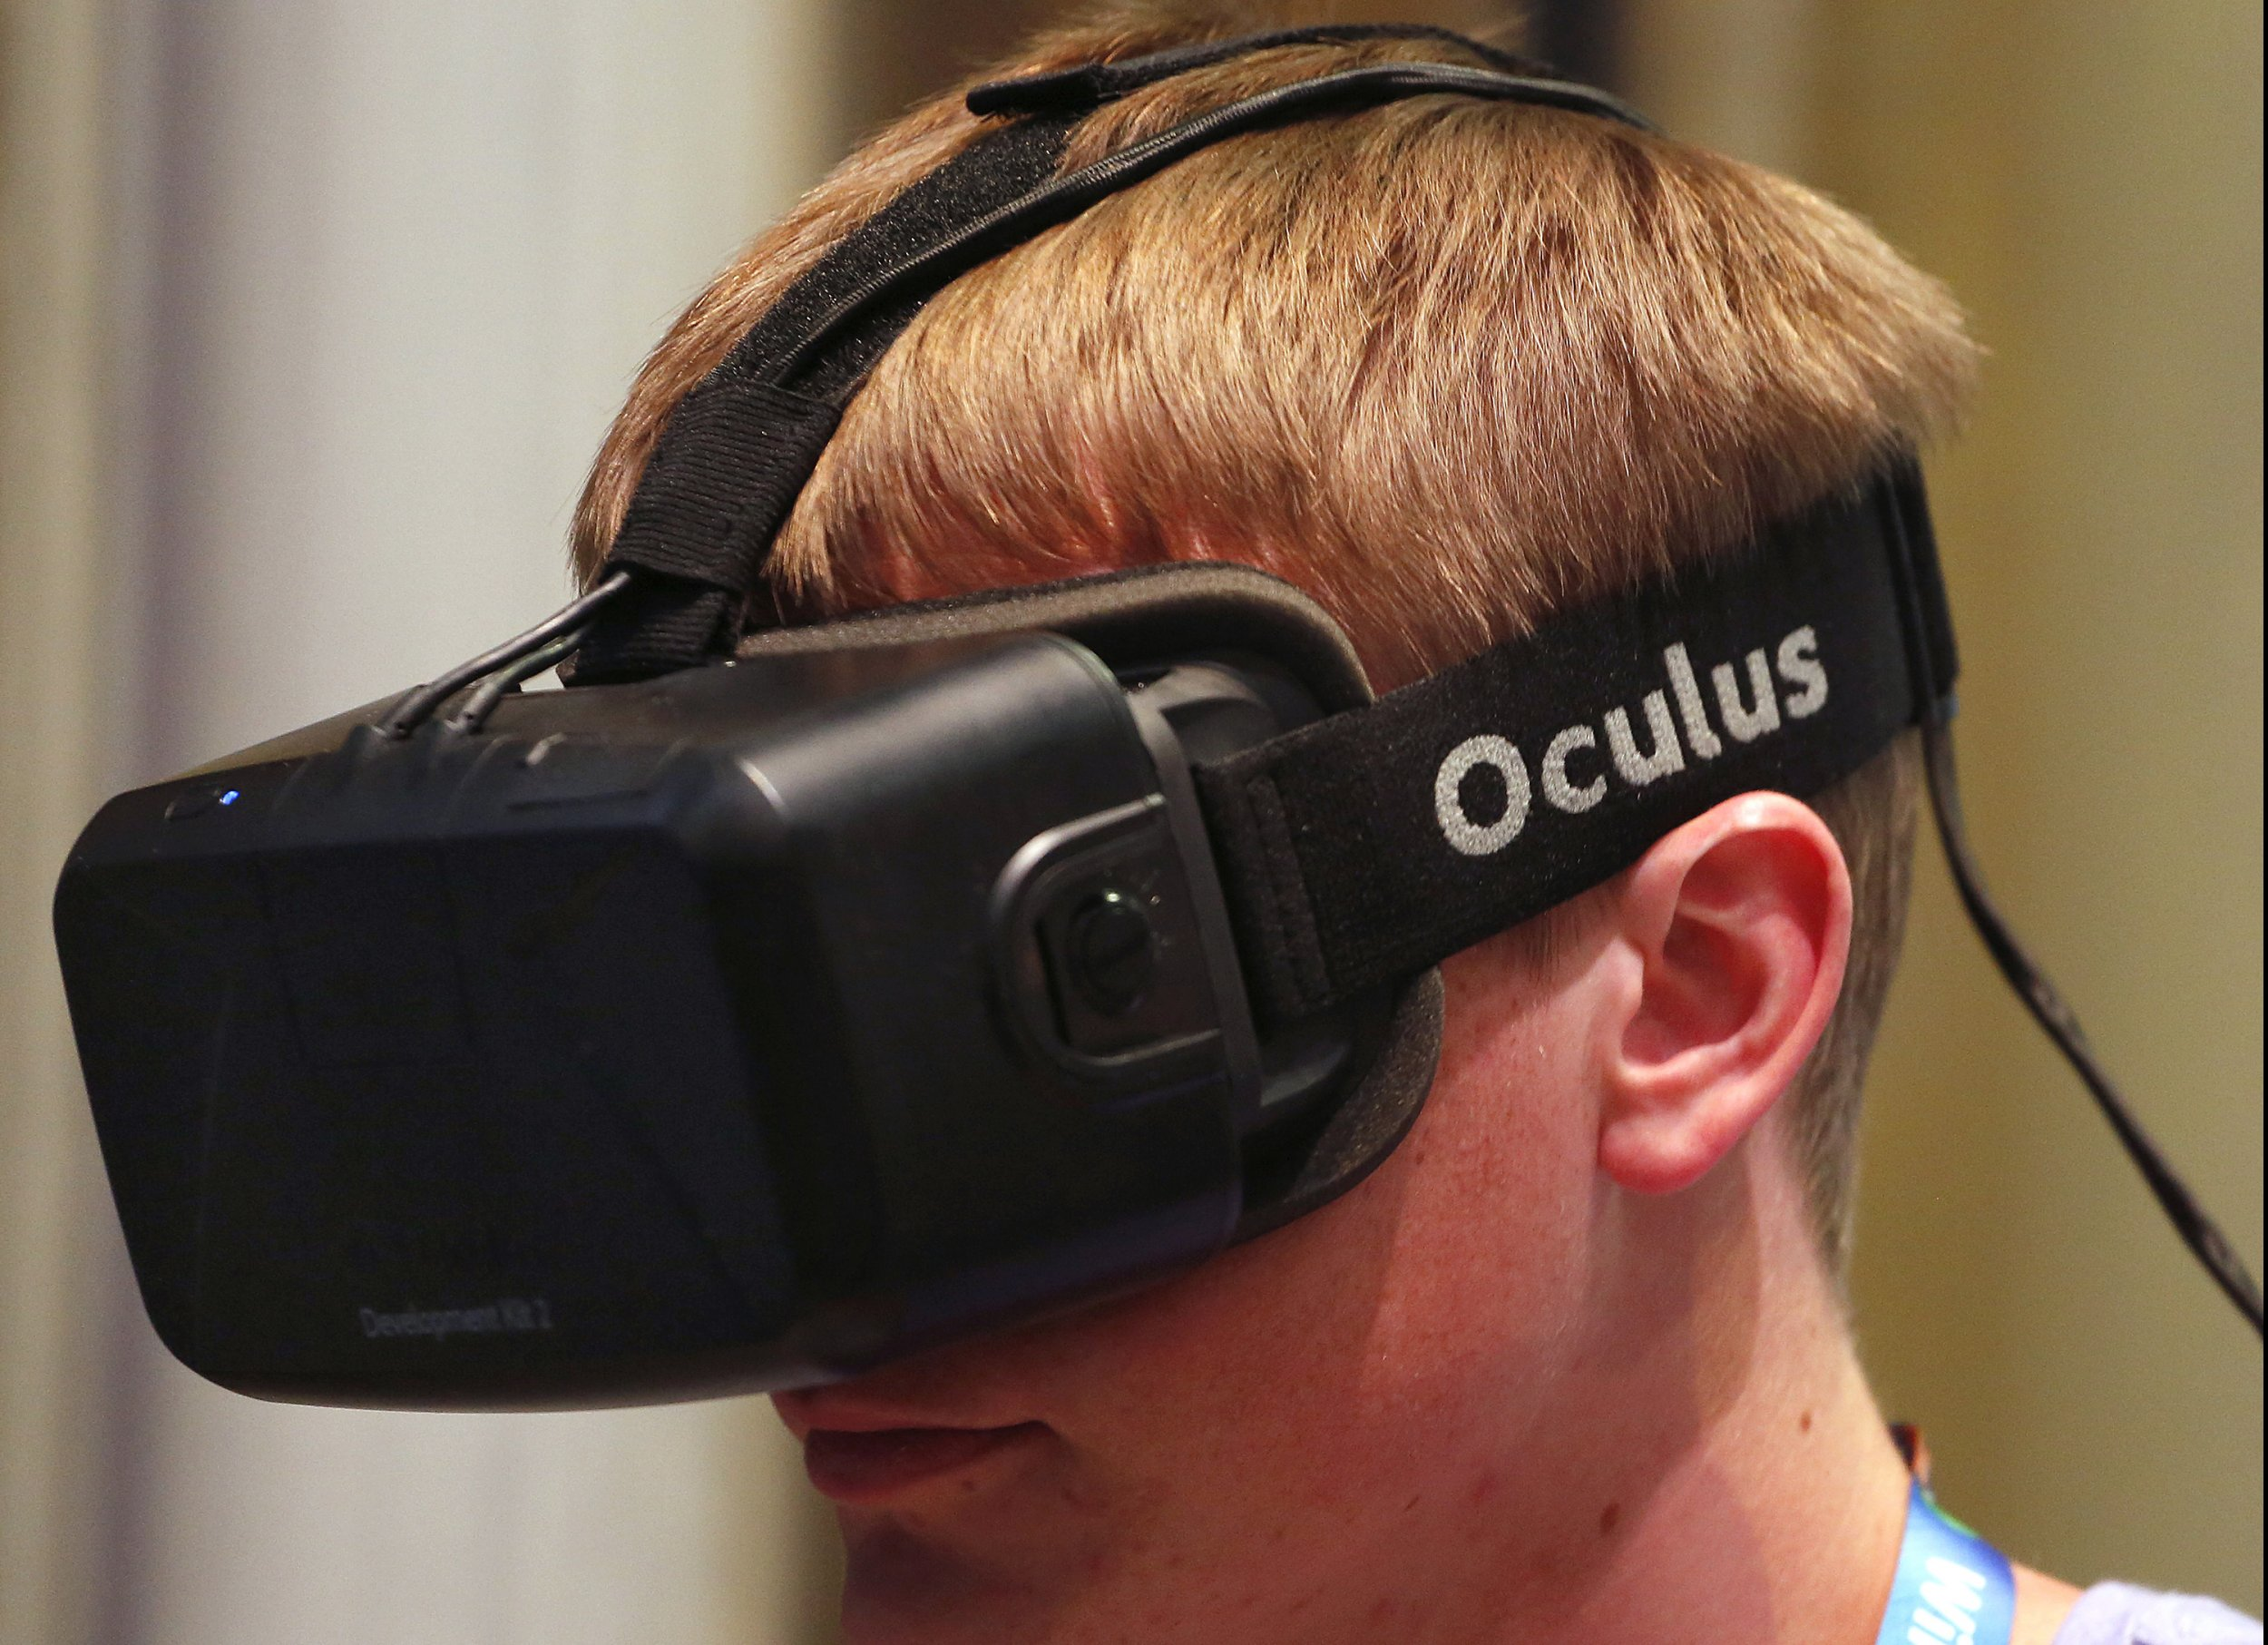 278c7c9dd2c Oculus Rift Oculus VR announced its Oculus Rift consumer headset will be available  in the first ...